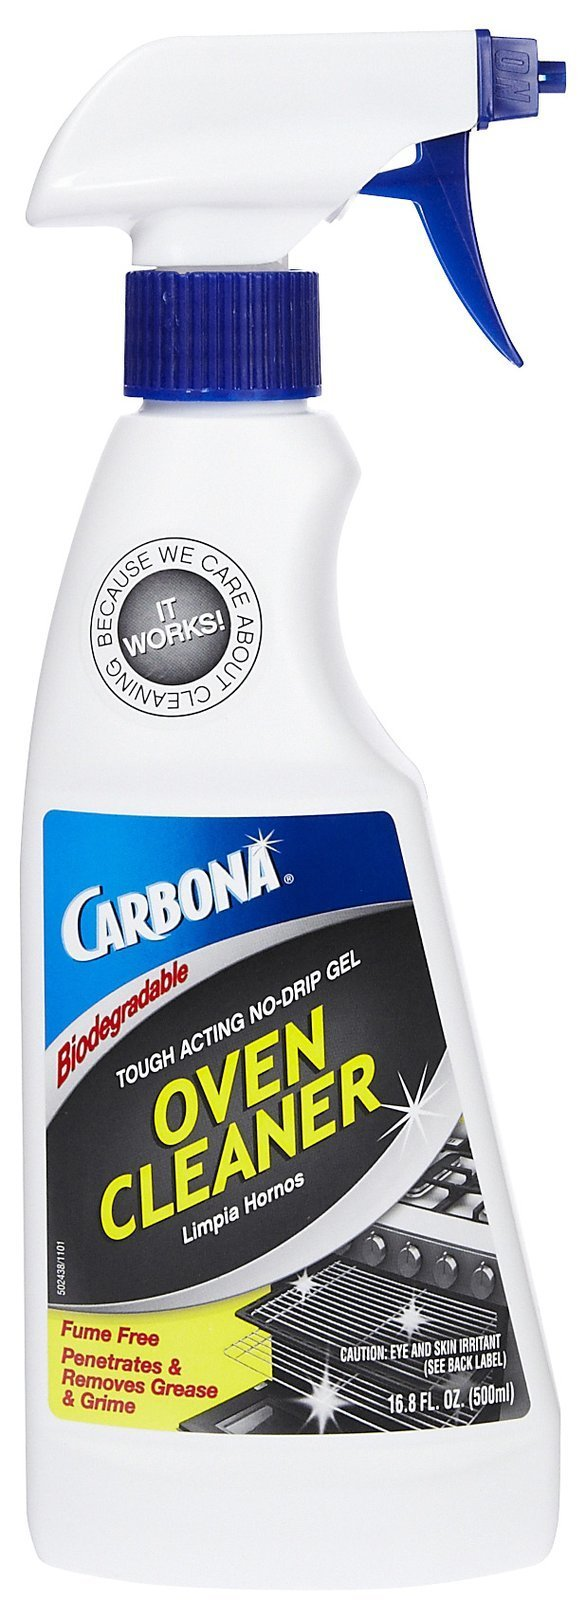 Carbona Oven Cleaner